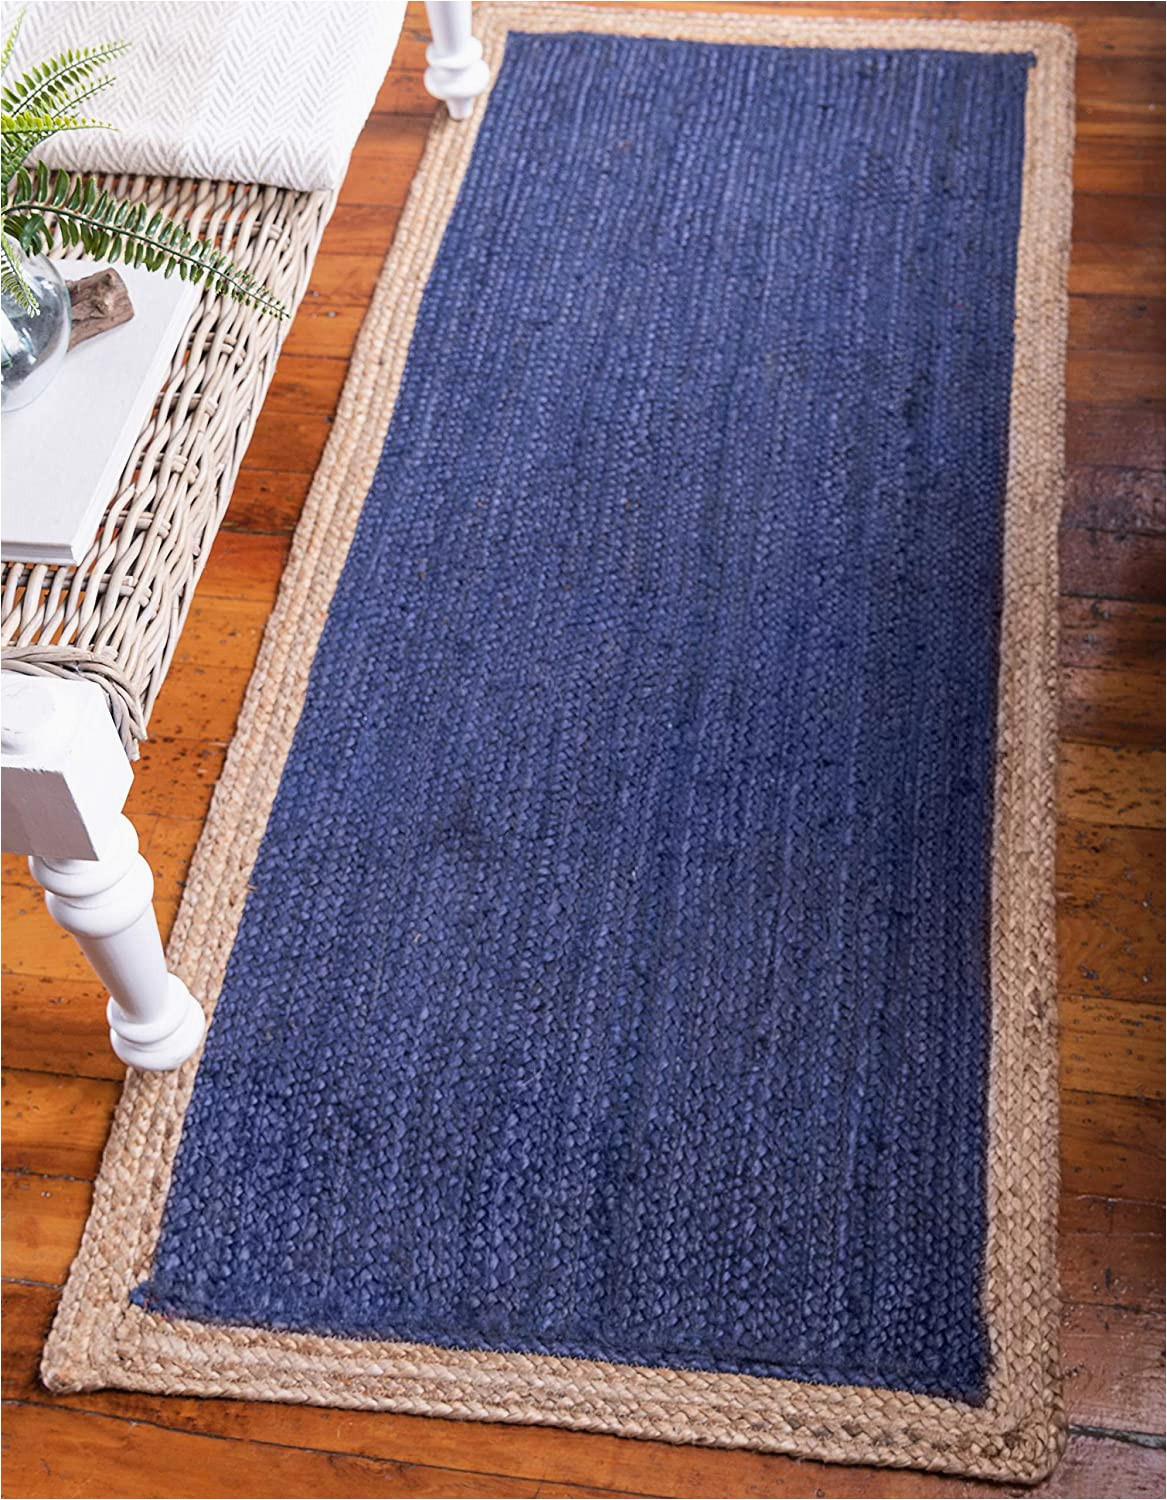 Navy Blue Braided Rugs Unique Loom Braided Jute Collection Hand Woven Natural Fibers Navy Blue Runner Rug 2 6 X 6 0